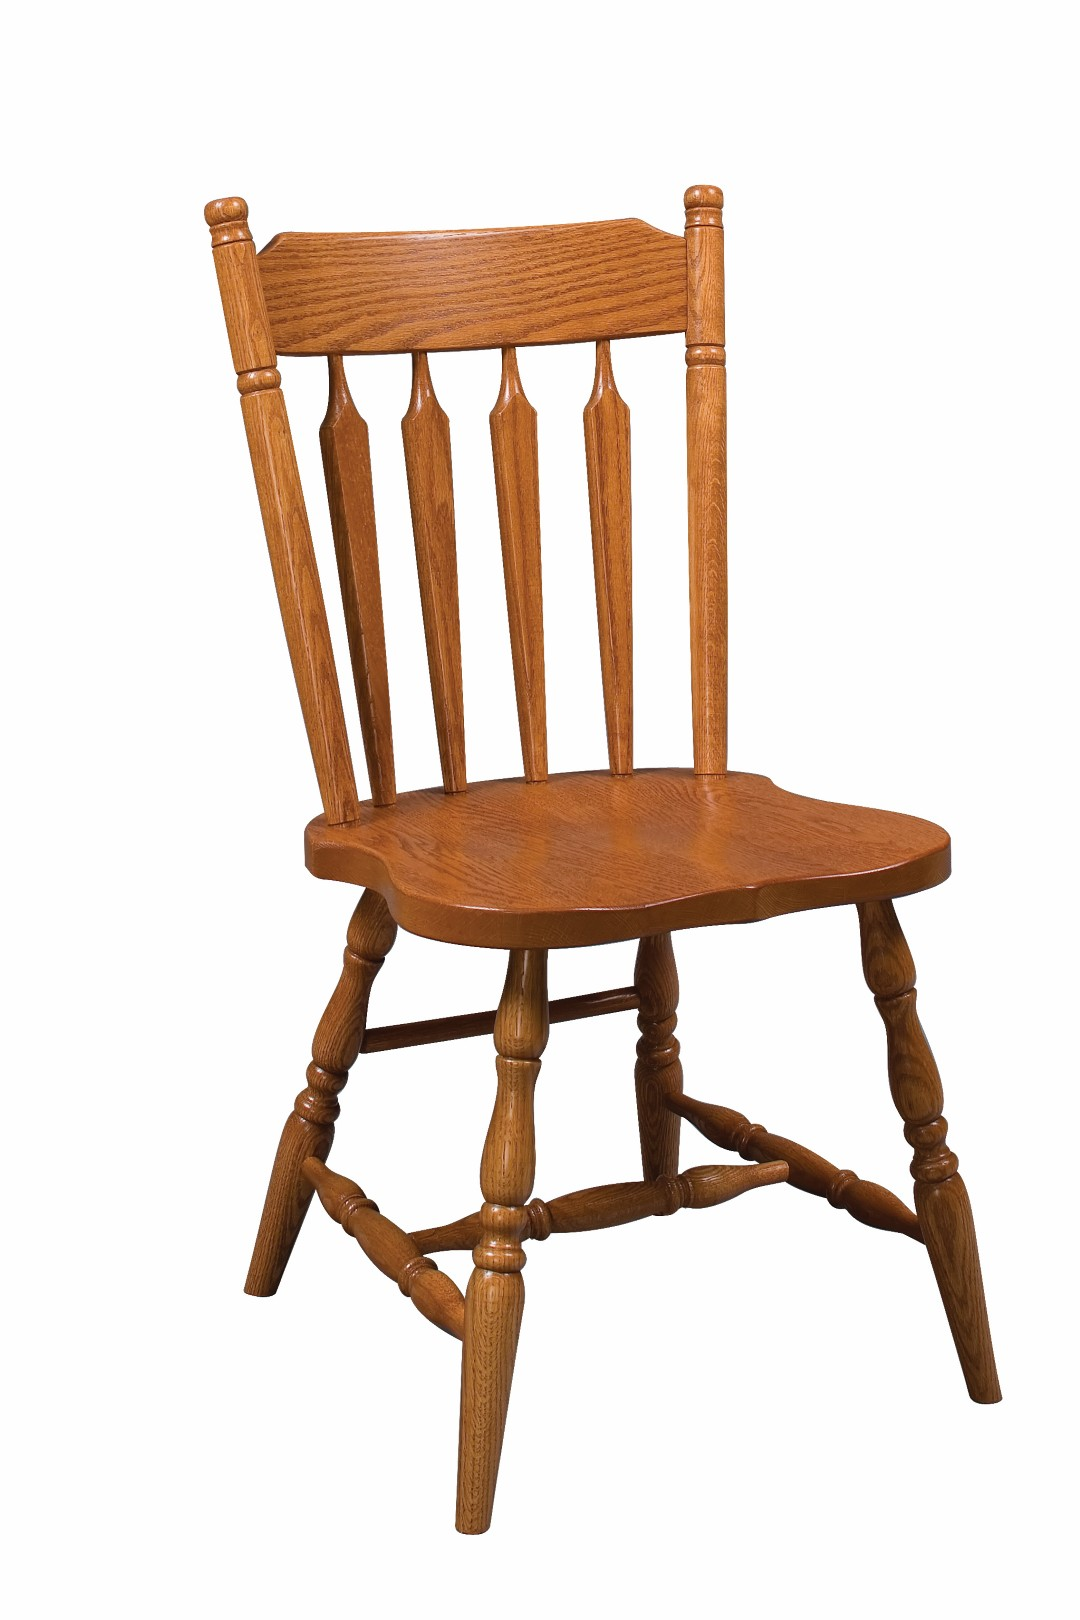 solid oak pressed back chairs chair cover for wedding on sale colonial arrowback town and country furniture